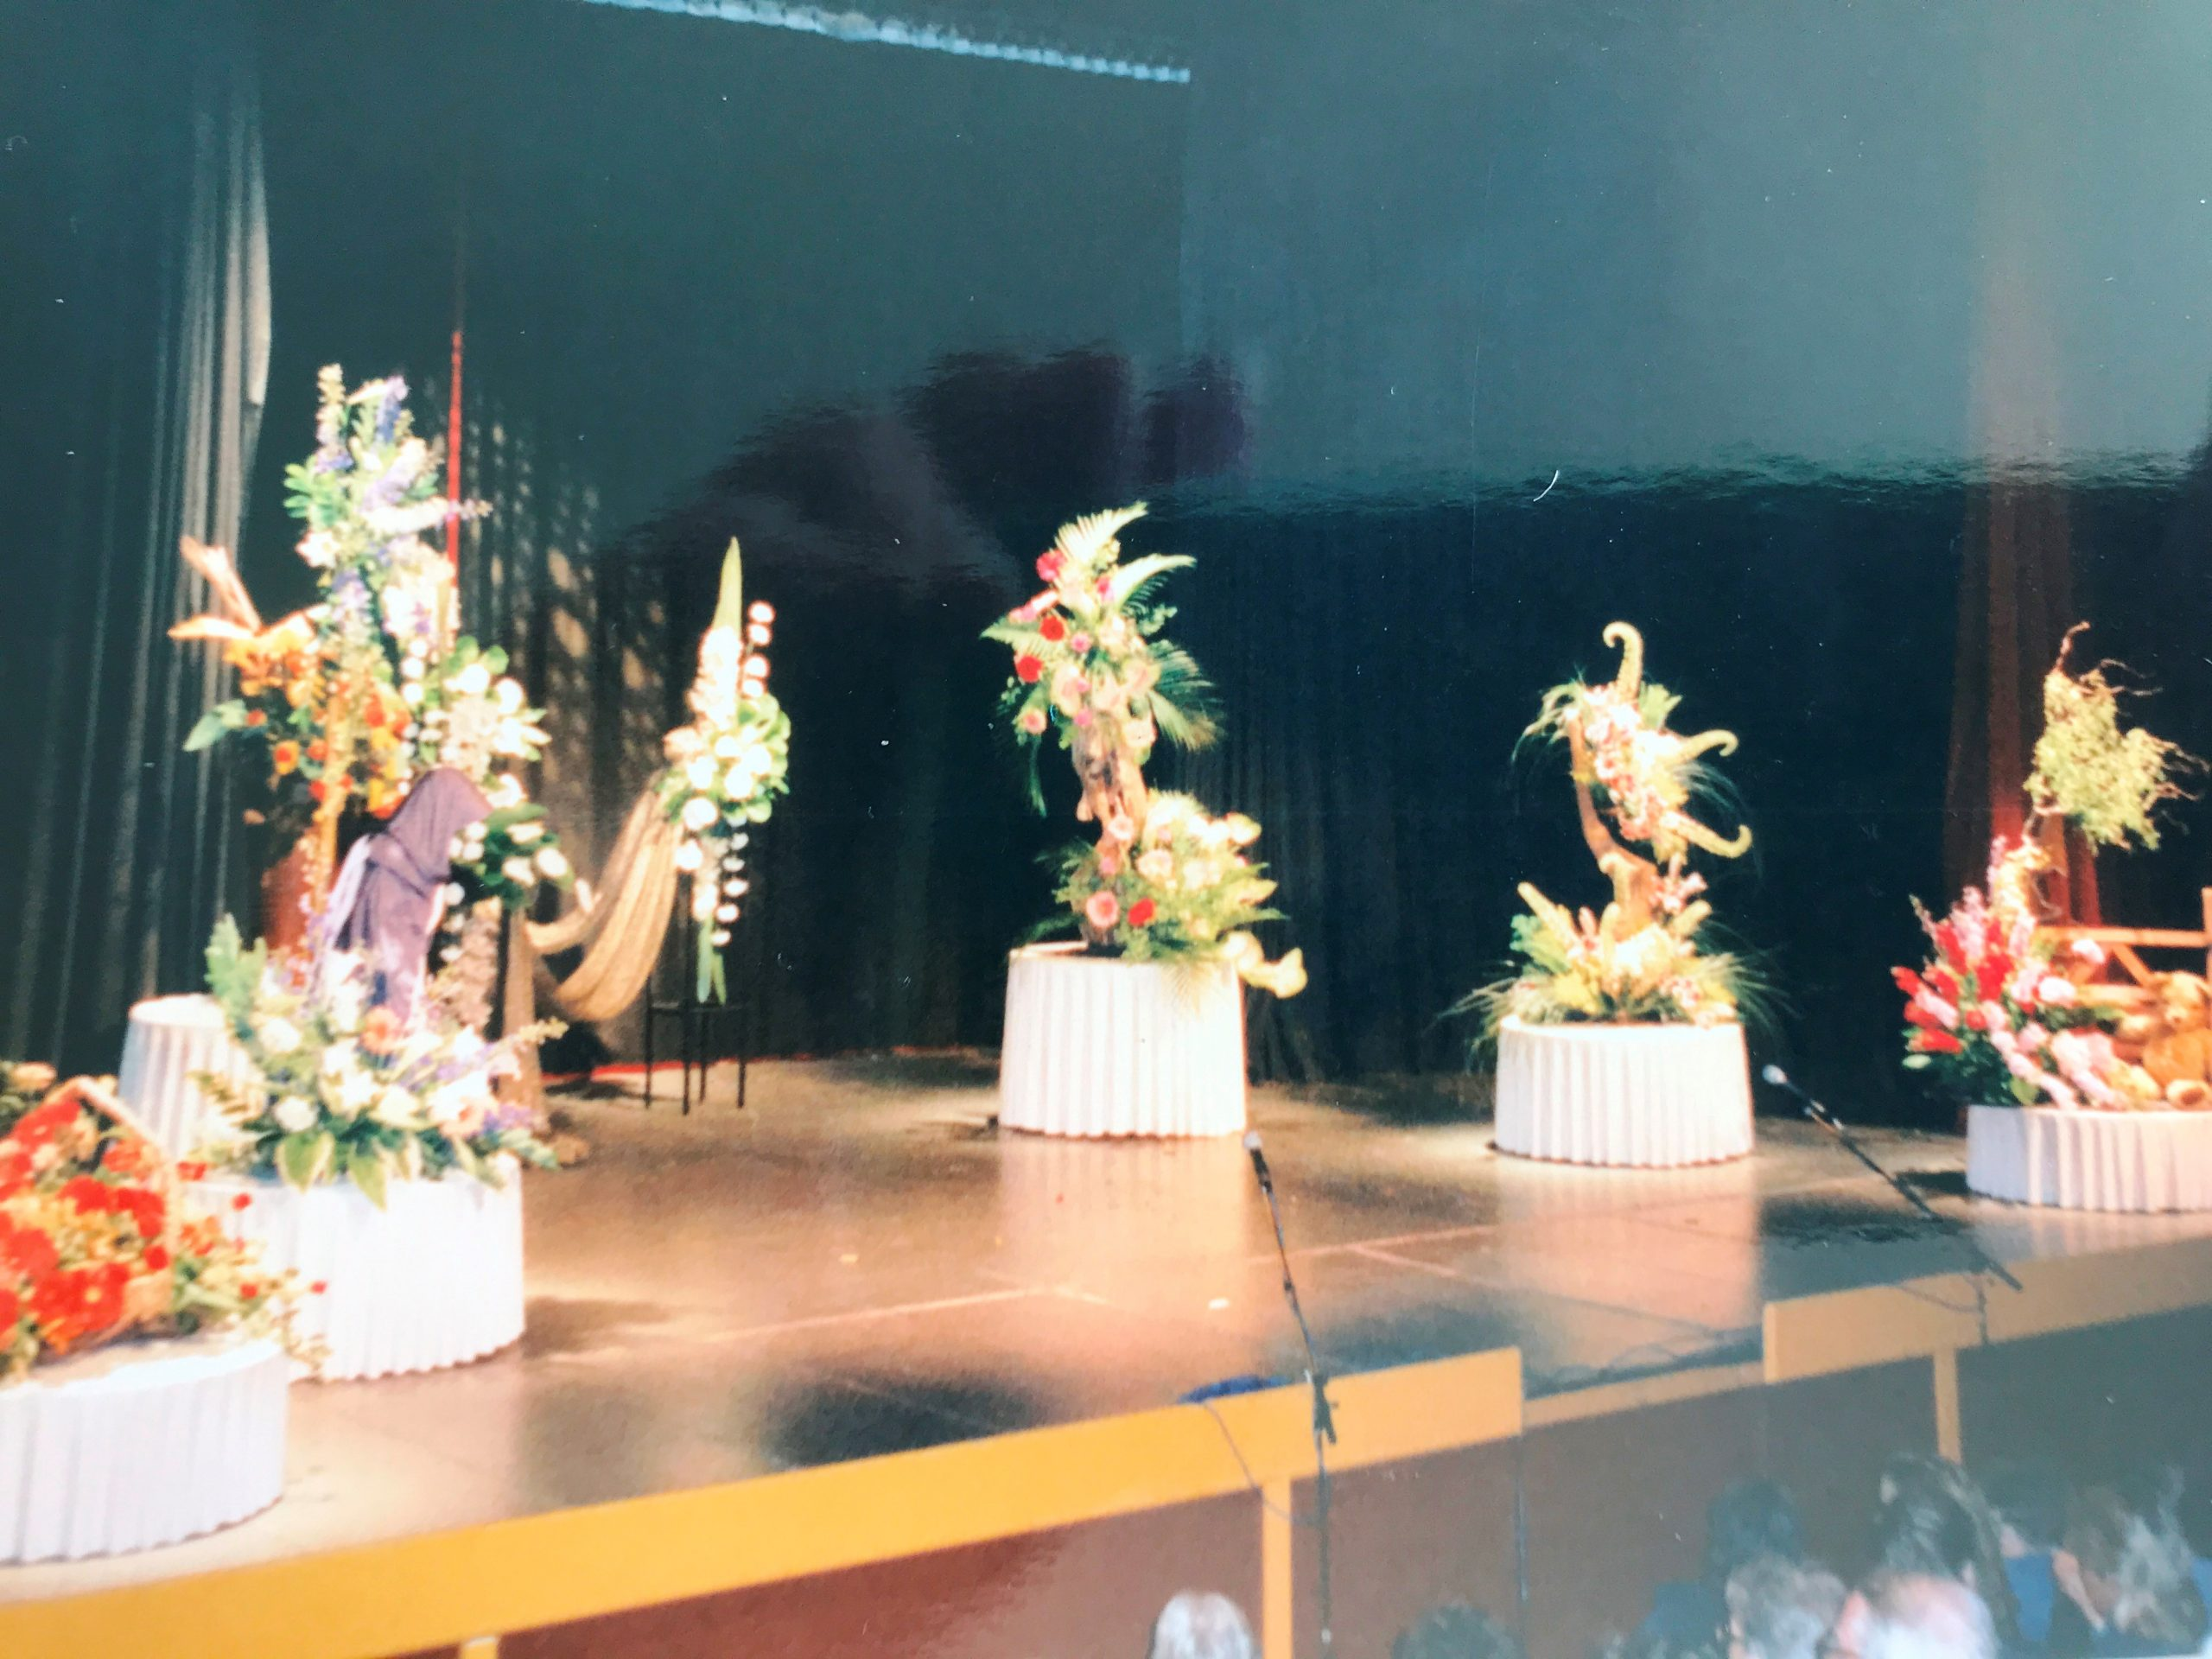 Floral demonstration at the Congress Theatre